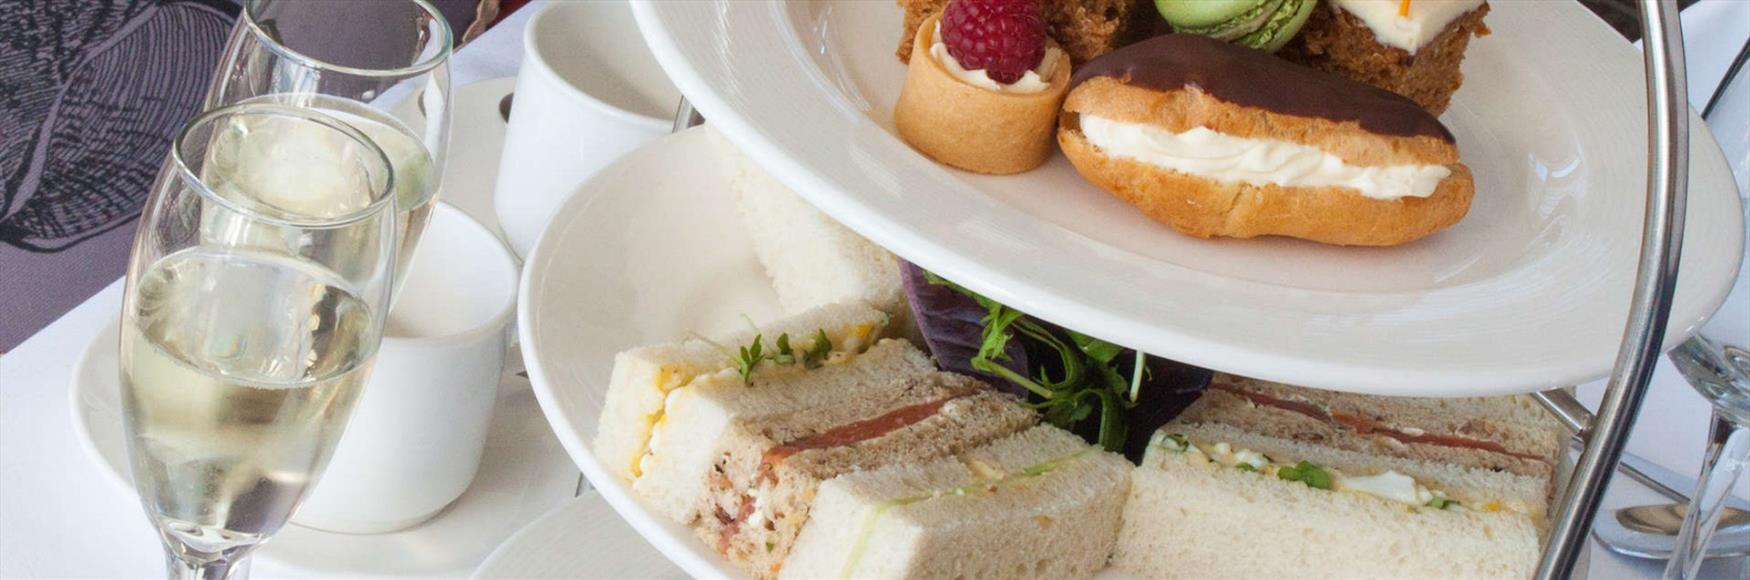 Afternoon Tea at the Headland Hotel